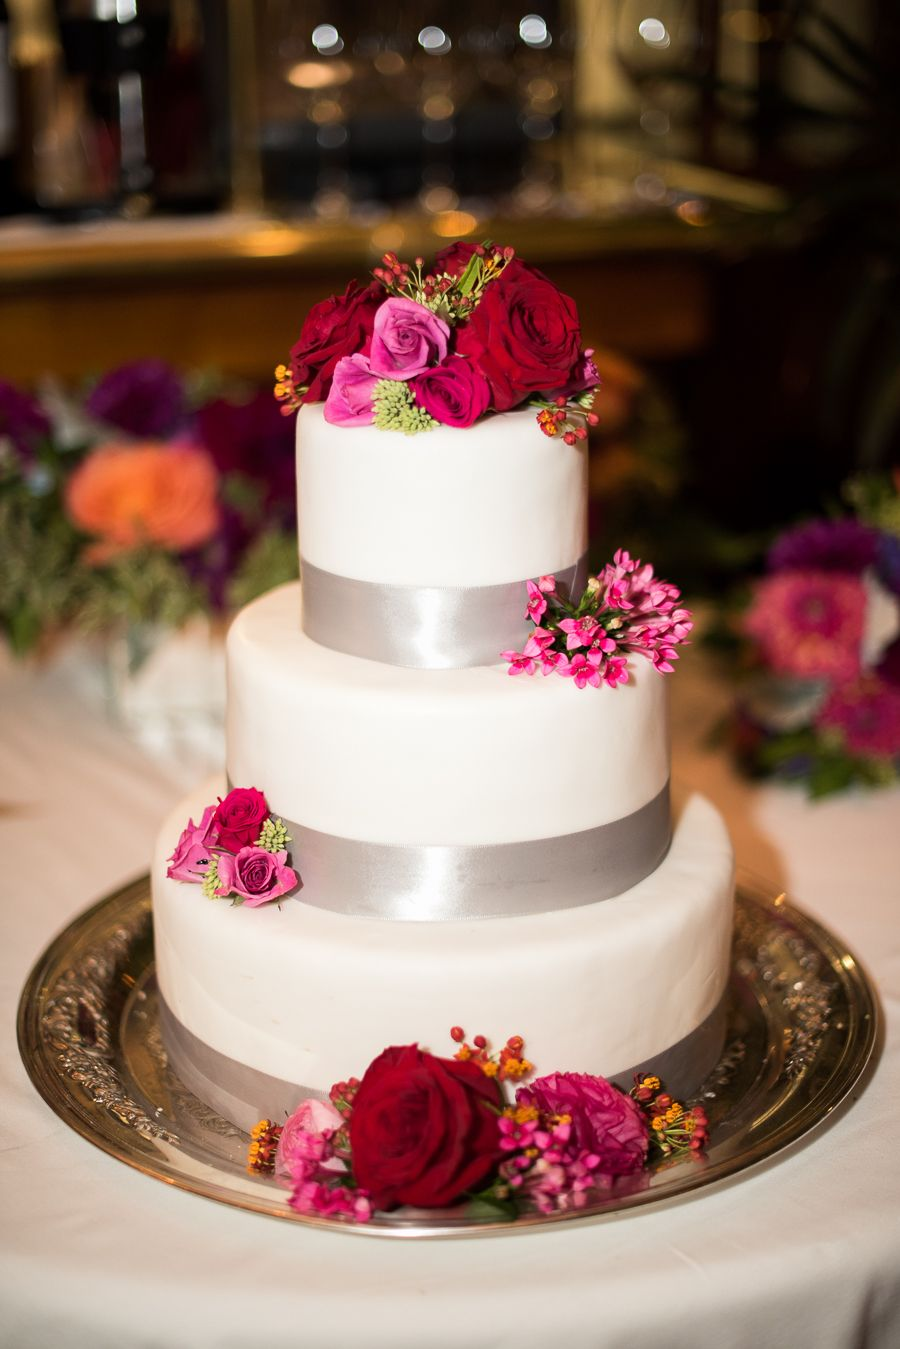 Cake with Fuchsia Flowers | photography by http://www.brklynview.com/